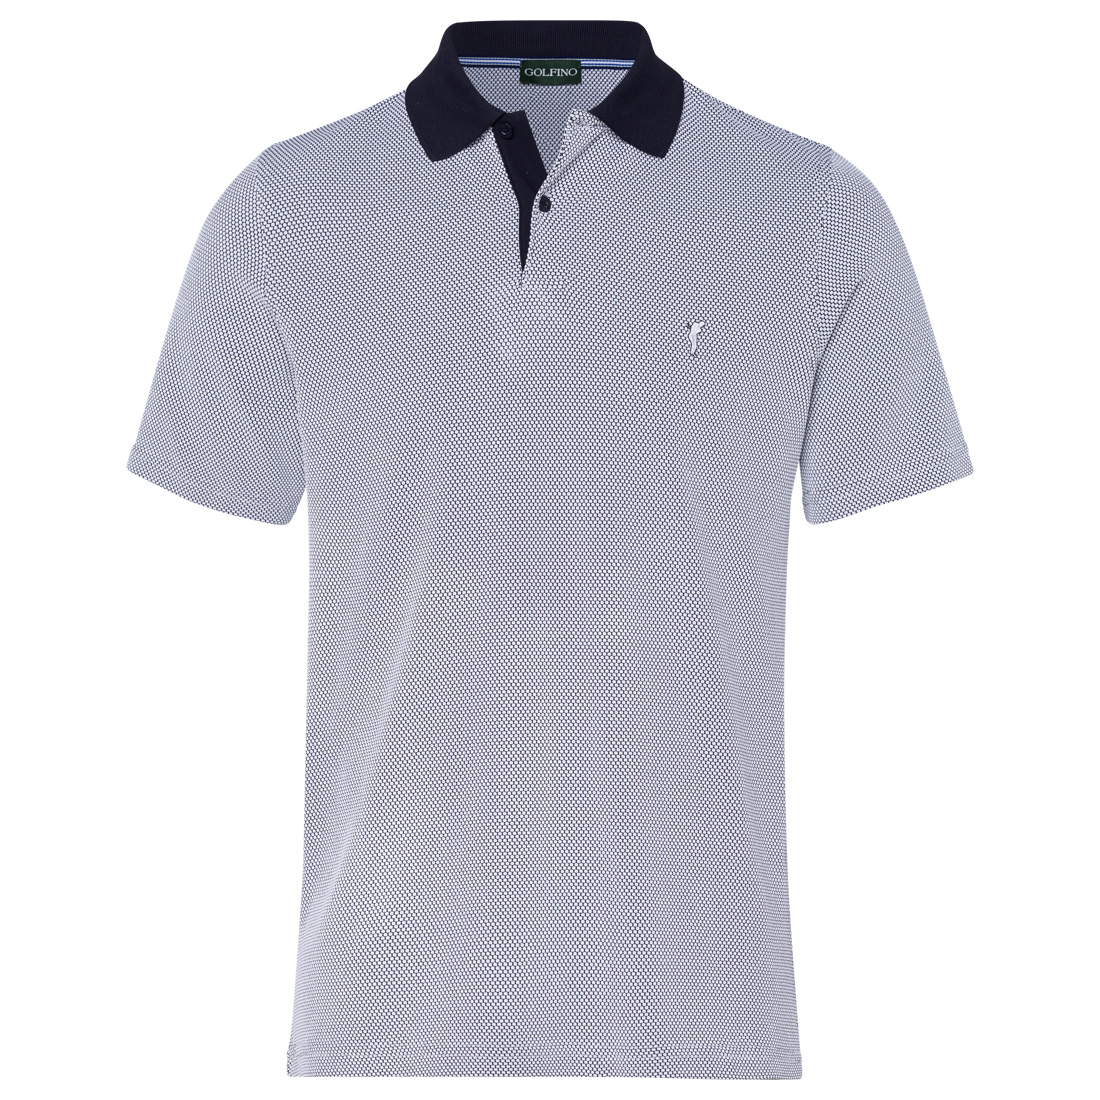 Men's polo in pleasant and breathable material